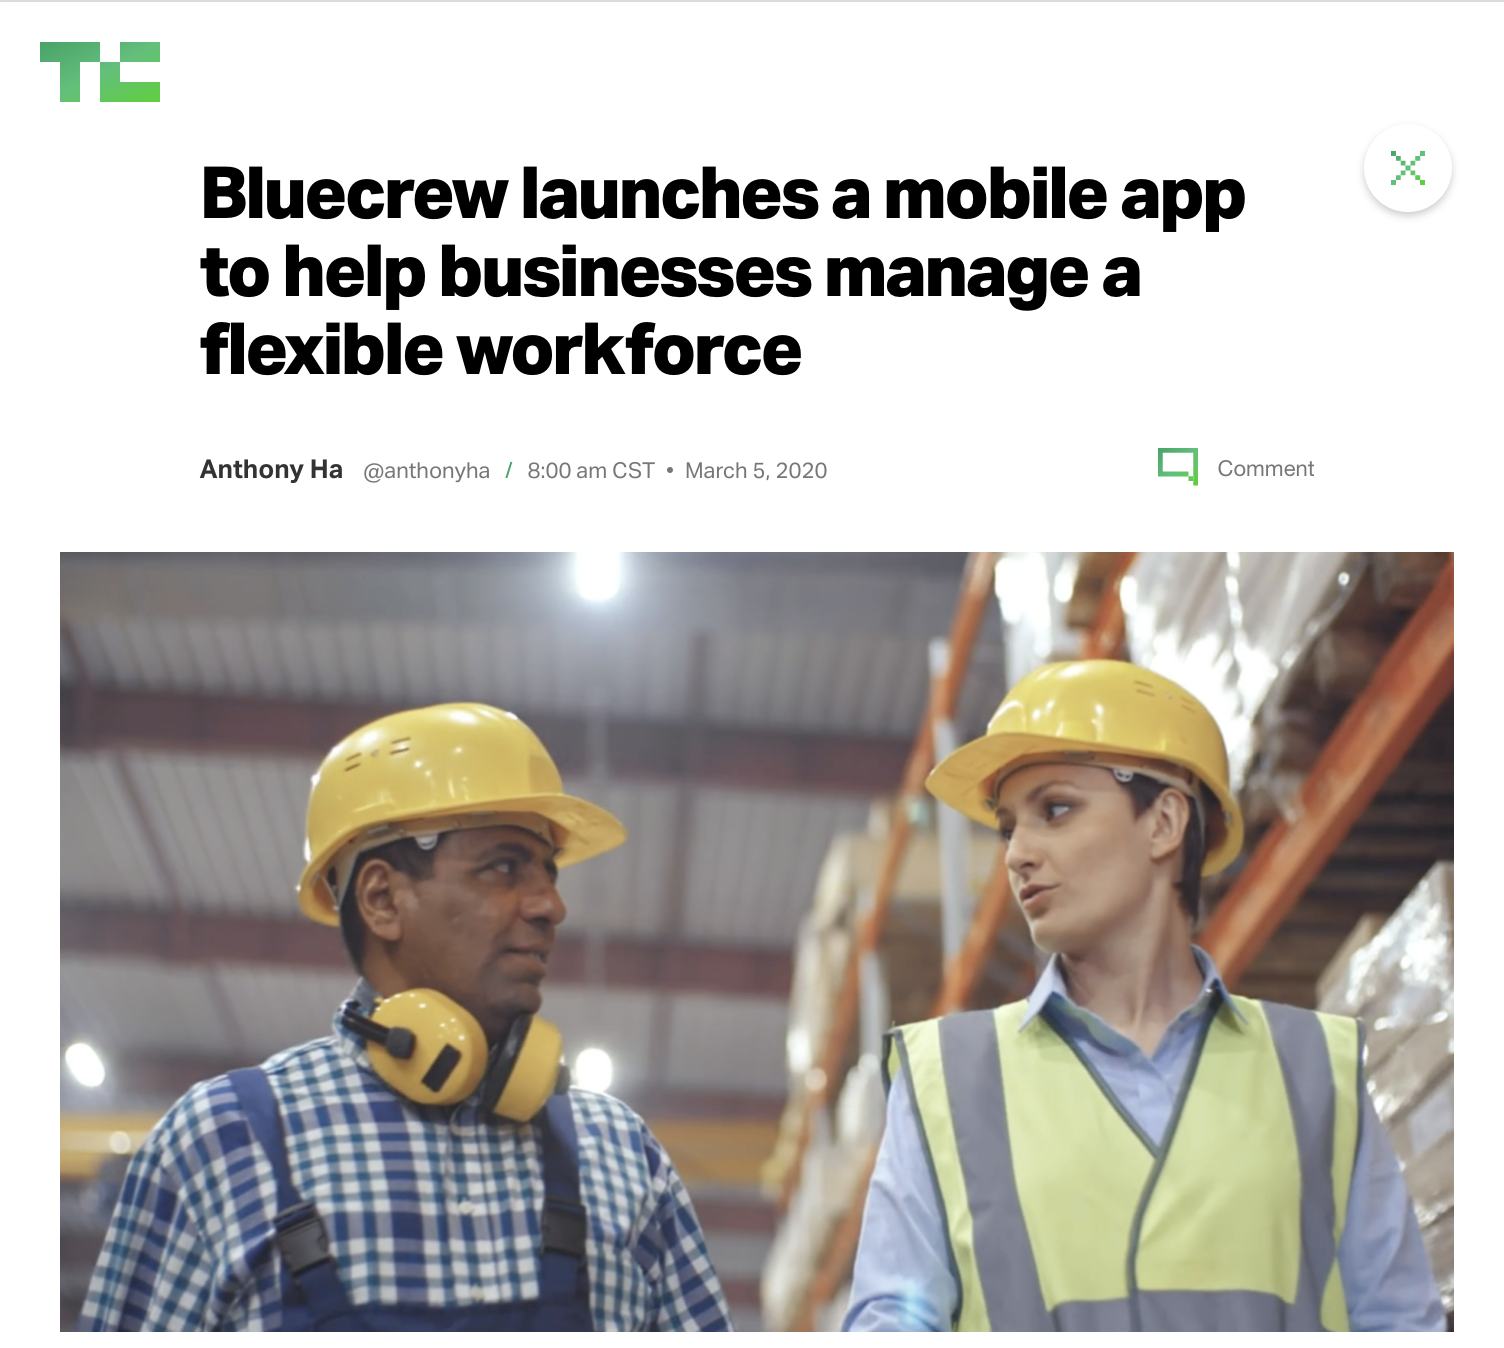 Bluecrew launches a mobile app to help businesses manage a flexible workforce